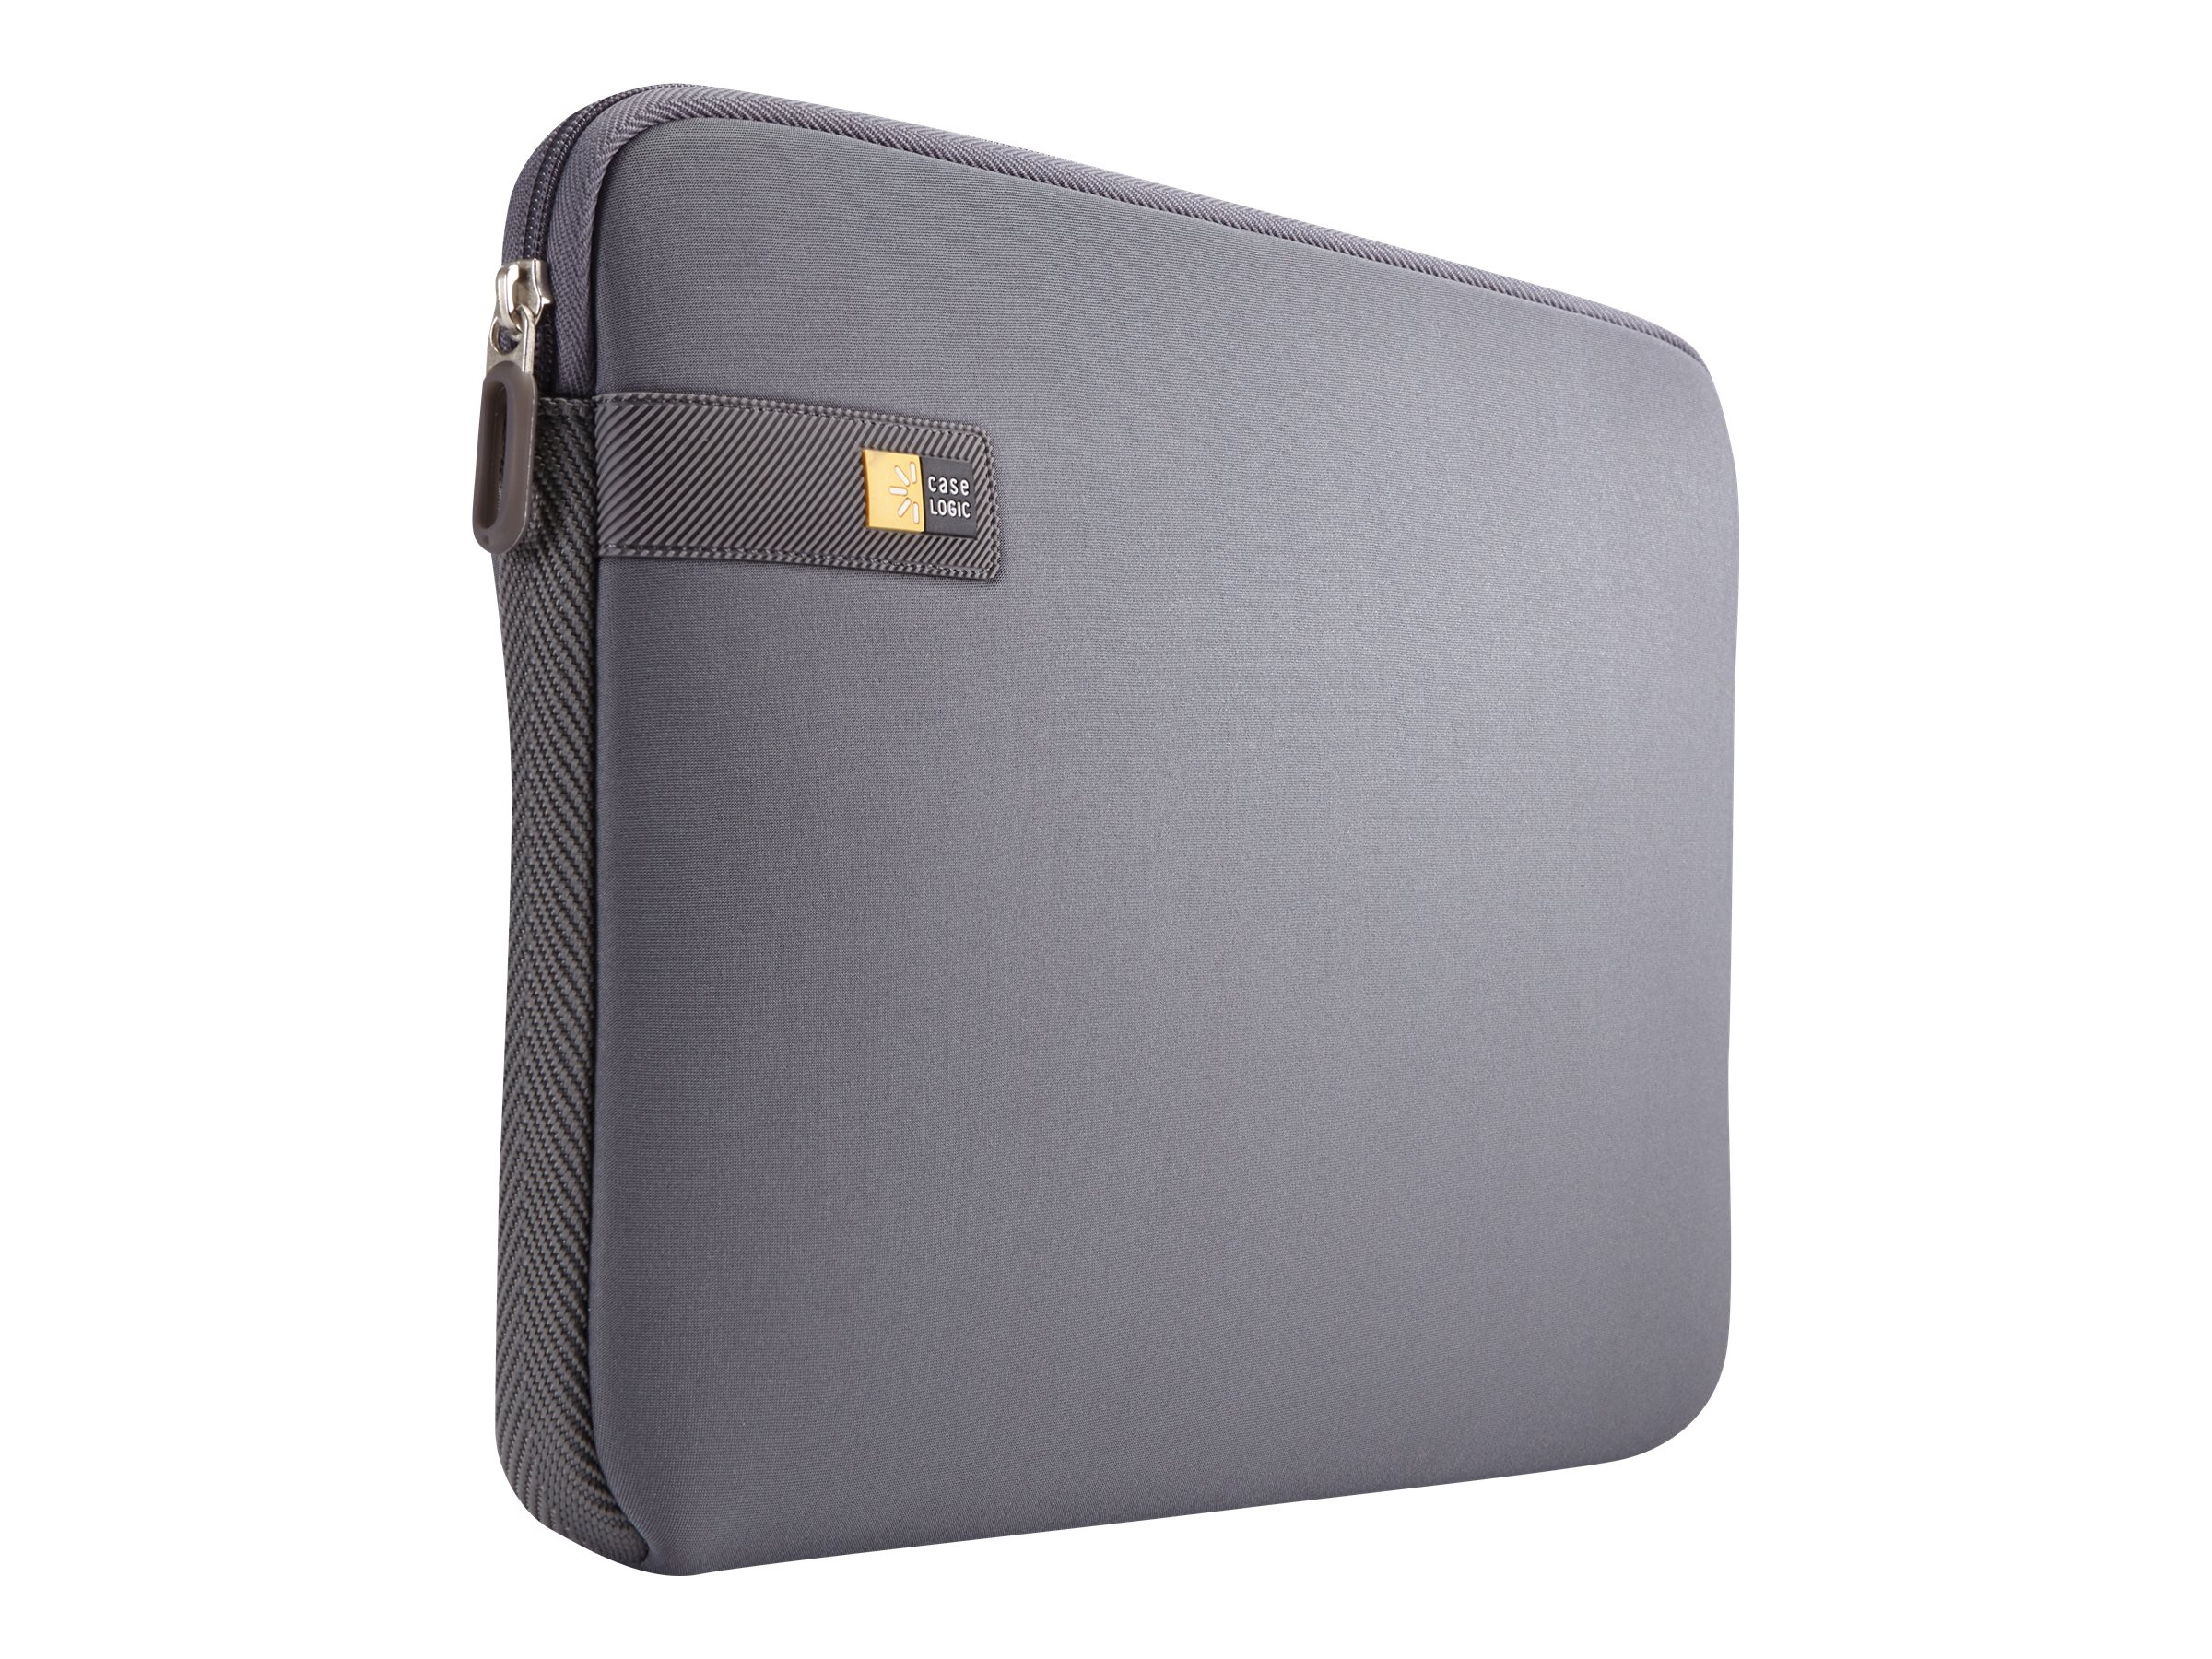 Case Logic 14 Laptop Sleeve, Graphite